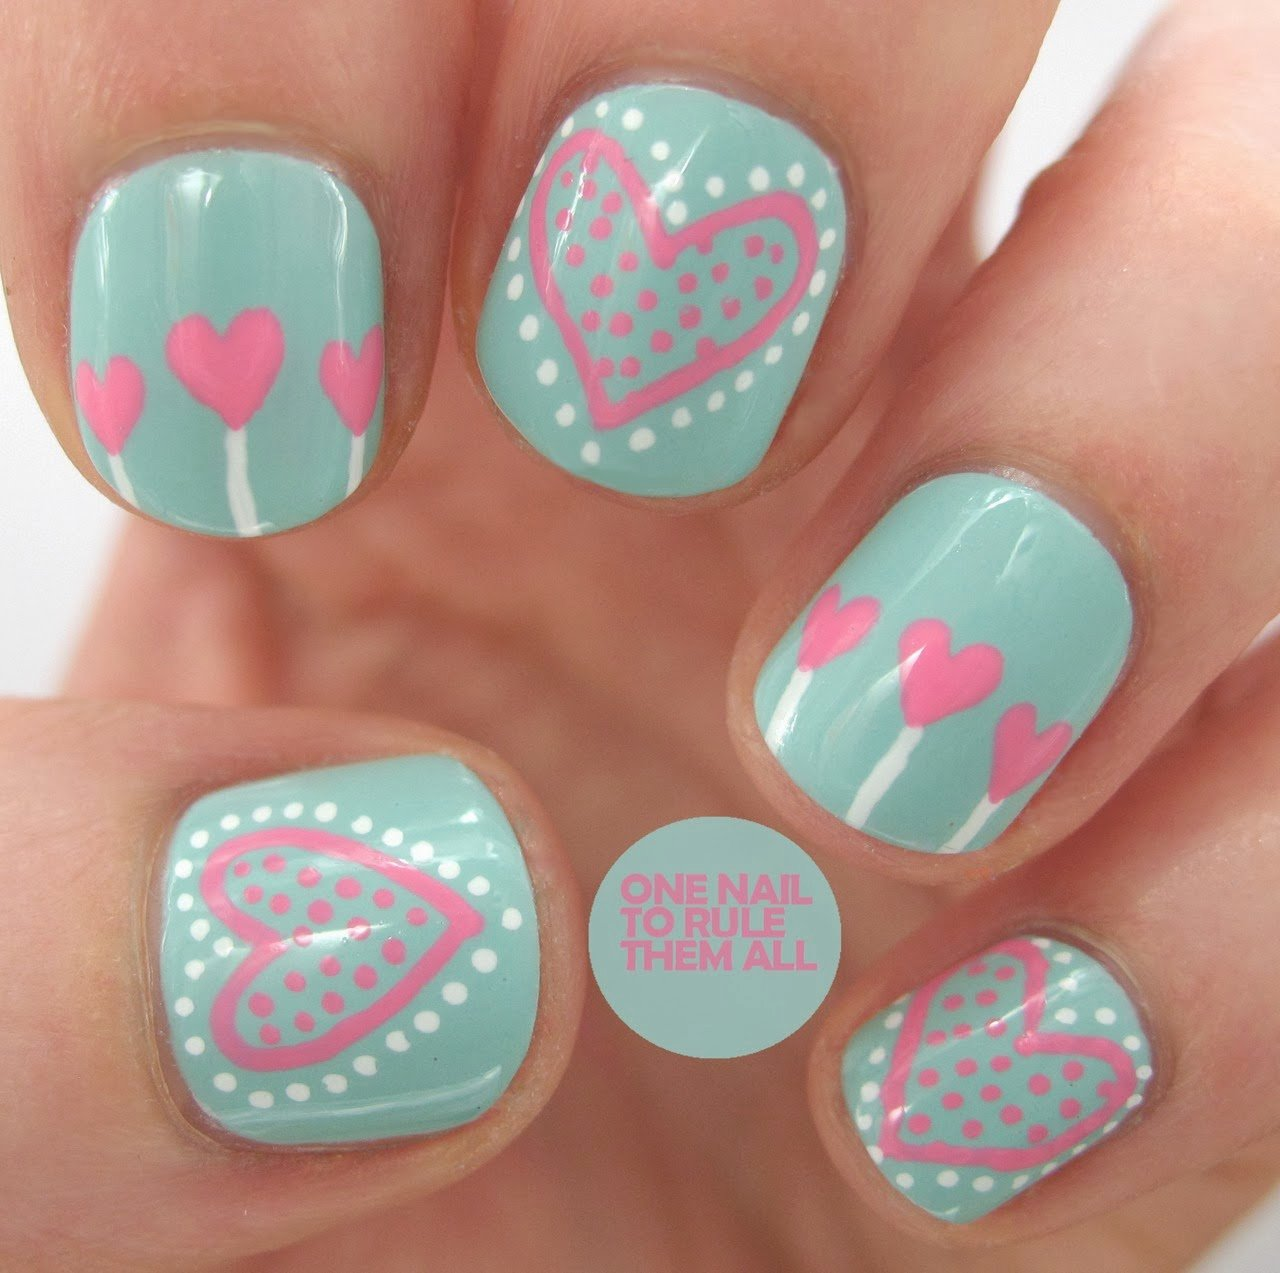 Nail Art Designs Videos Luxury Cute Nail Art Ideas